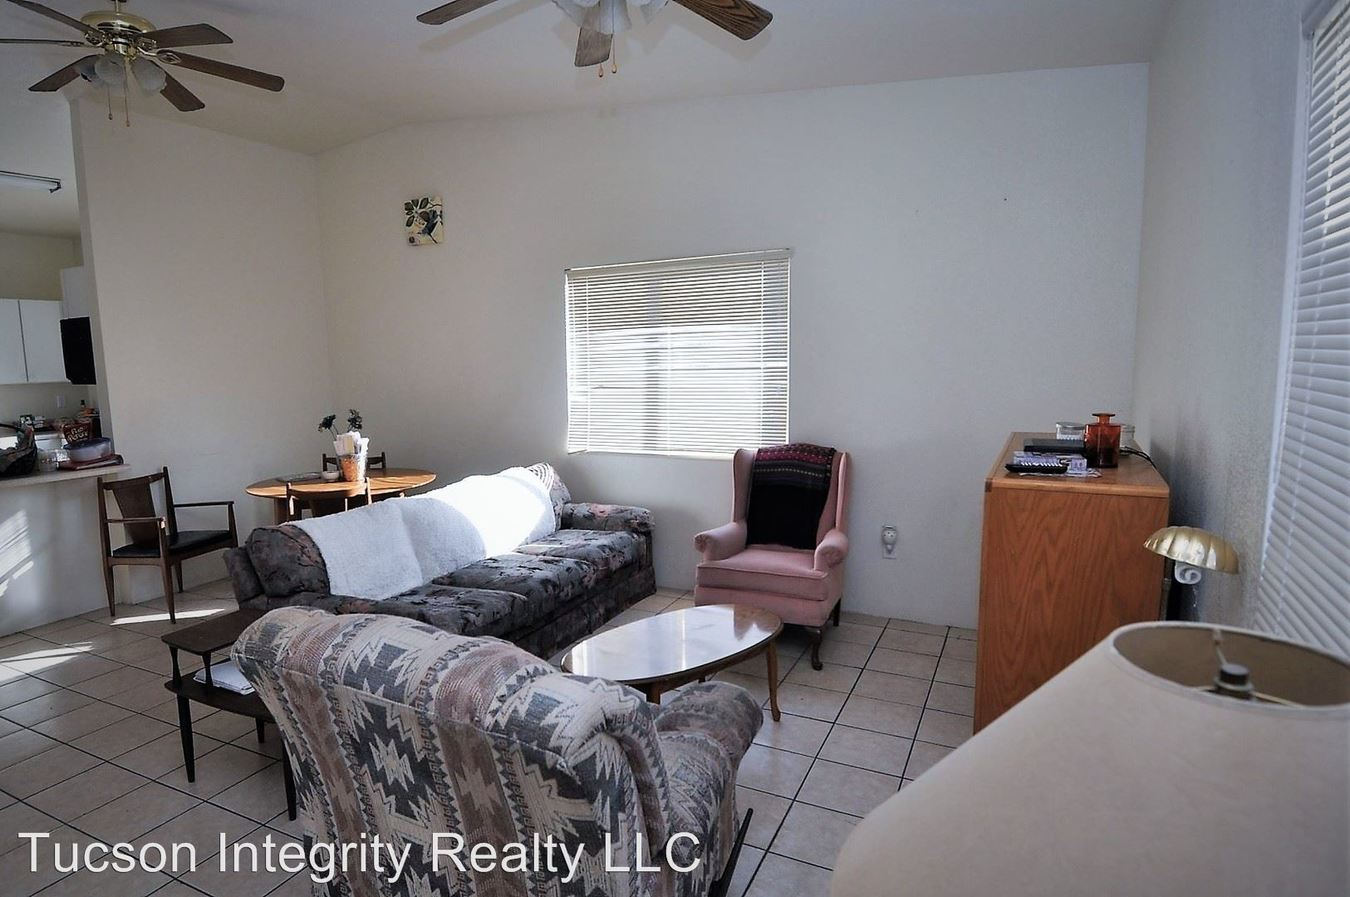 5 Bedrooms 3 Bathrooms Apartment for rent at 1134 E 7th St in Tucson, AZ